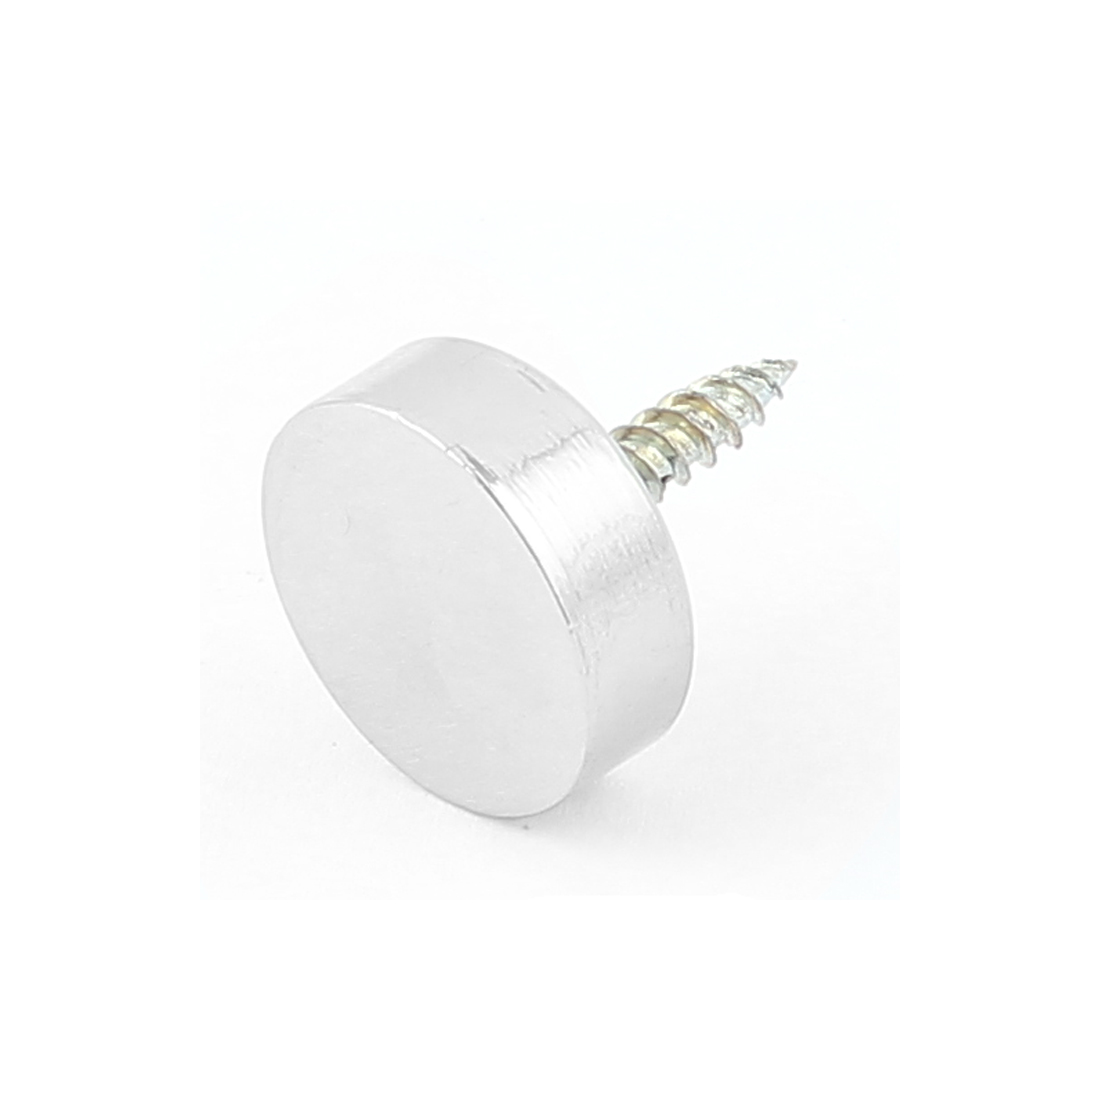 Decoration Wardrobes 19mm Dia Round Cap Screw Mirror Nails Silver Tone